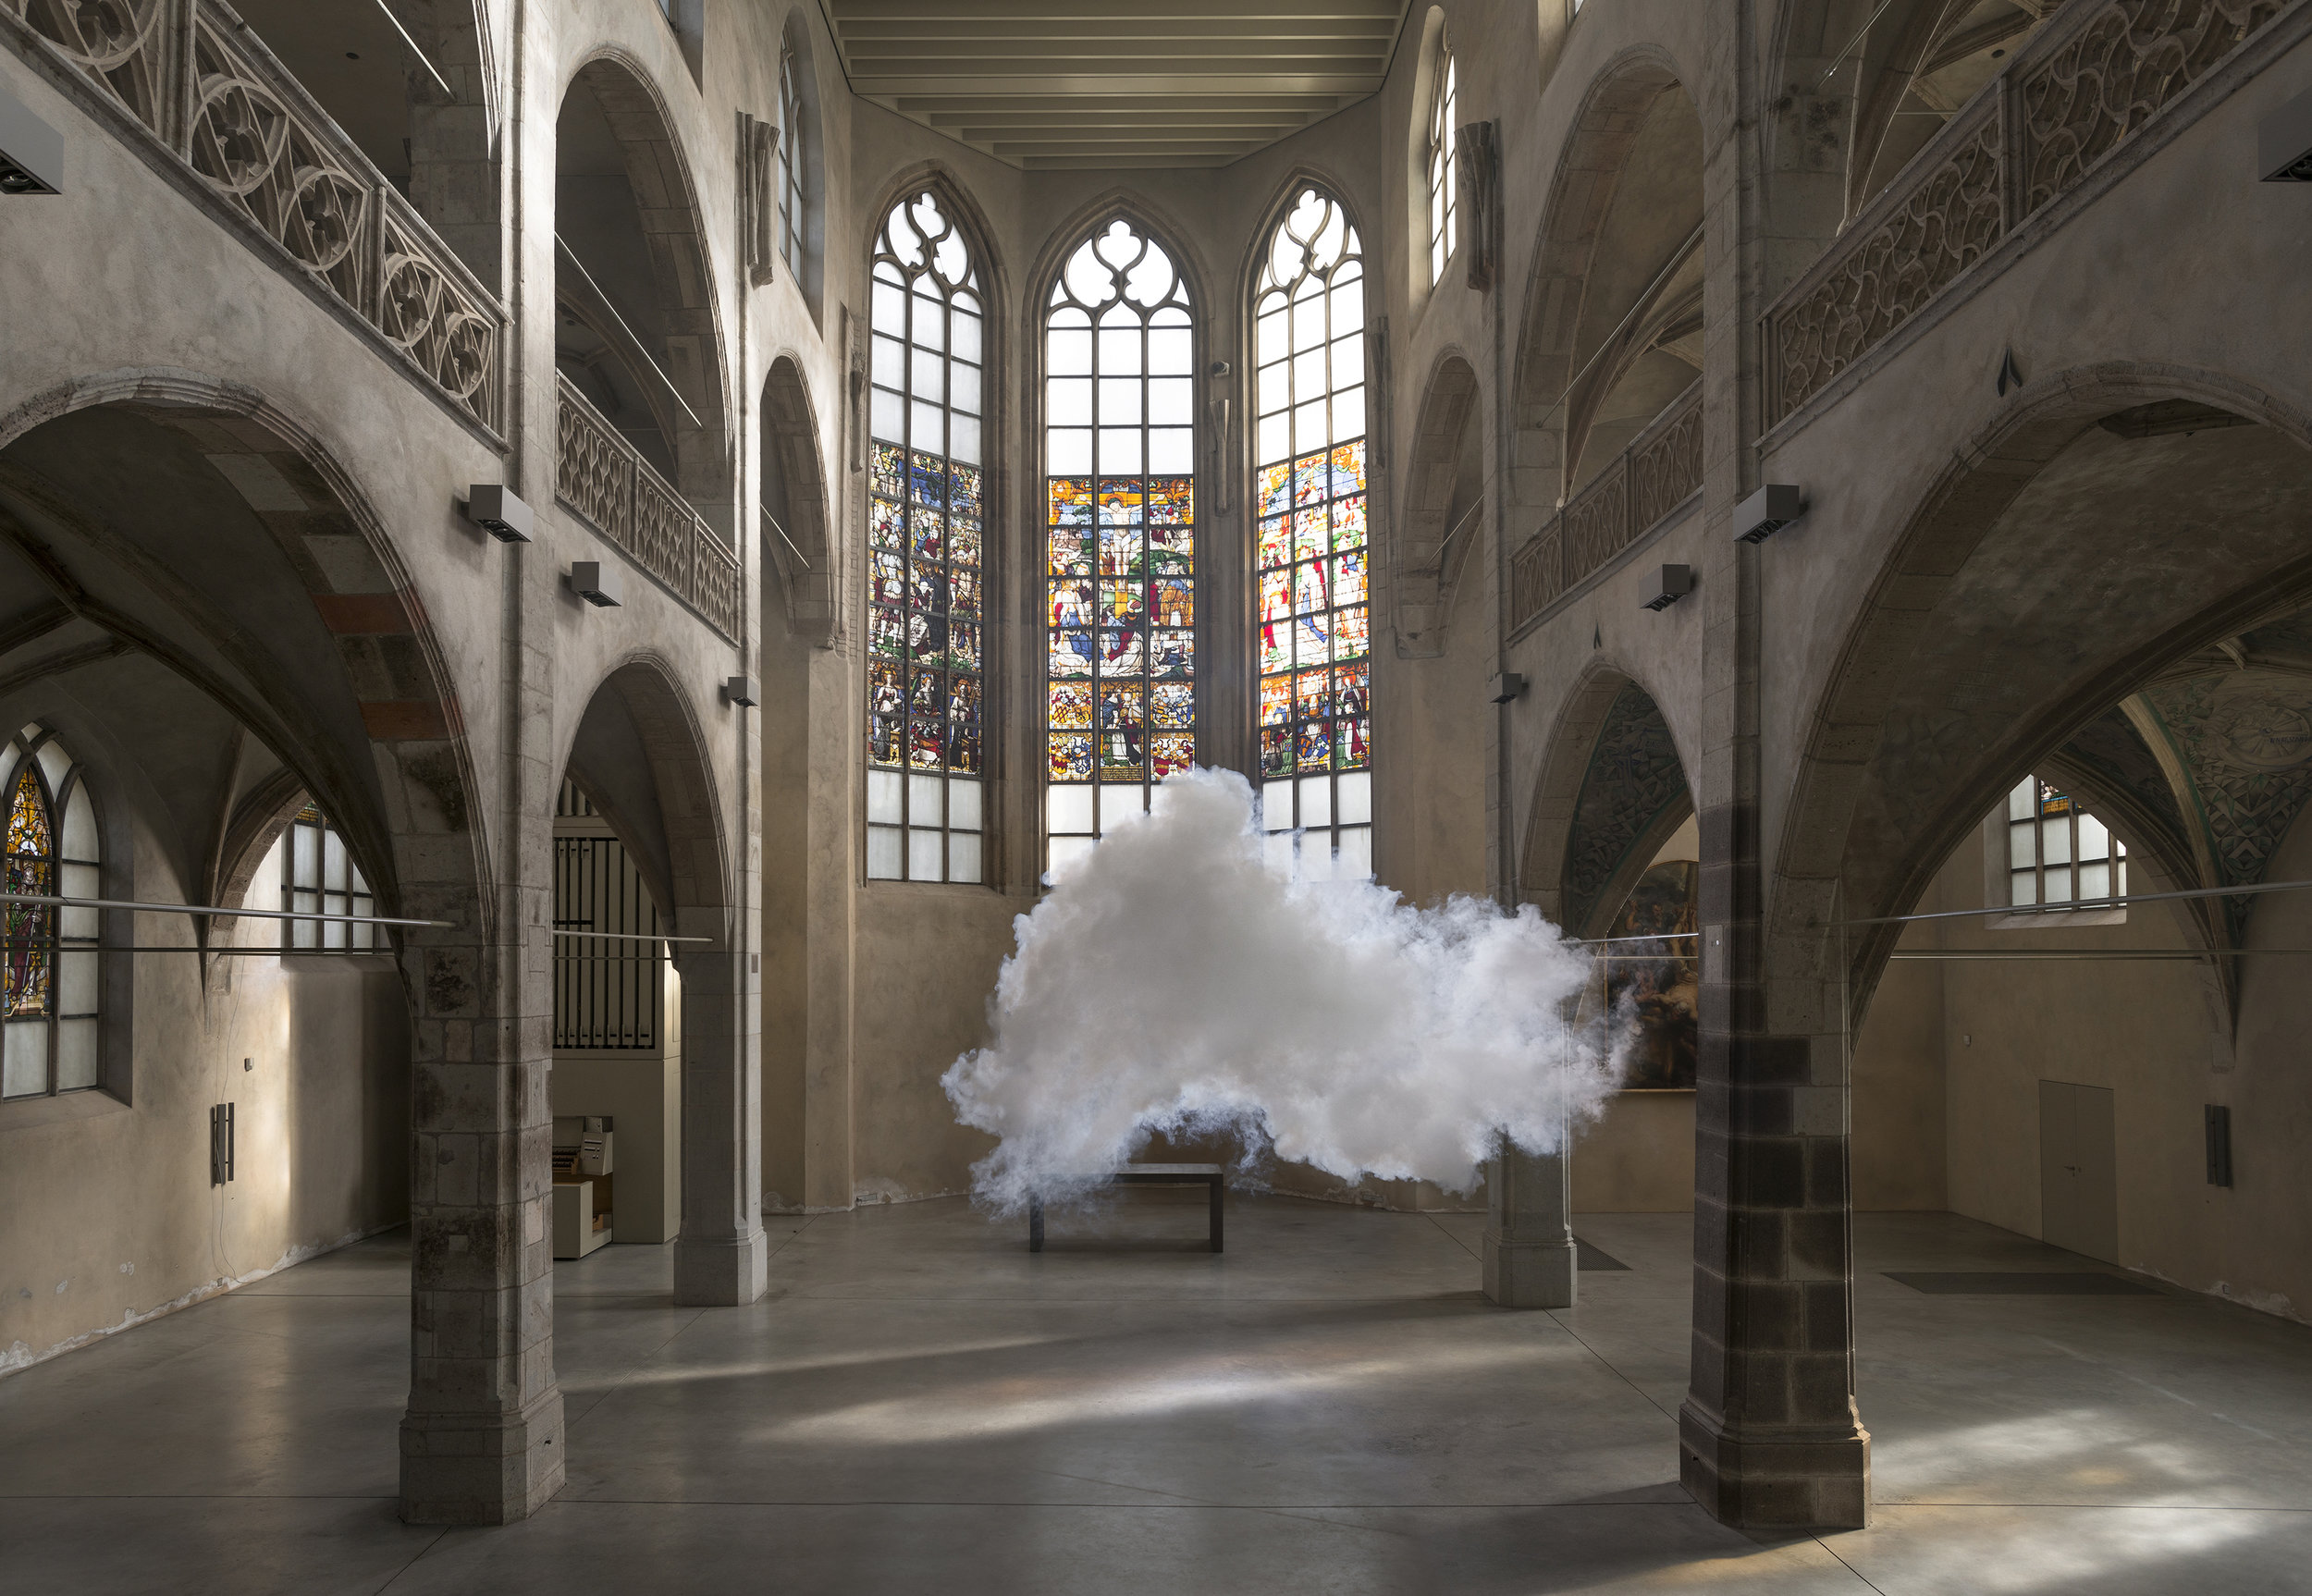 This artist creates miniature cloud installations in spaces around the world - Lonely Planet Travel News. Article by James Gabriel Martin